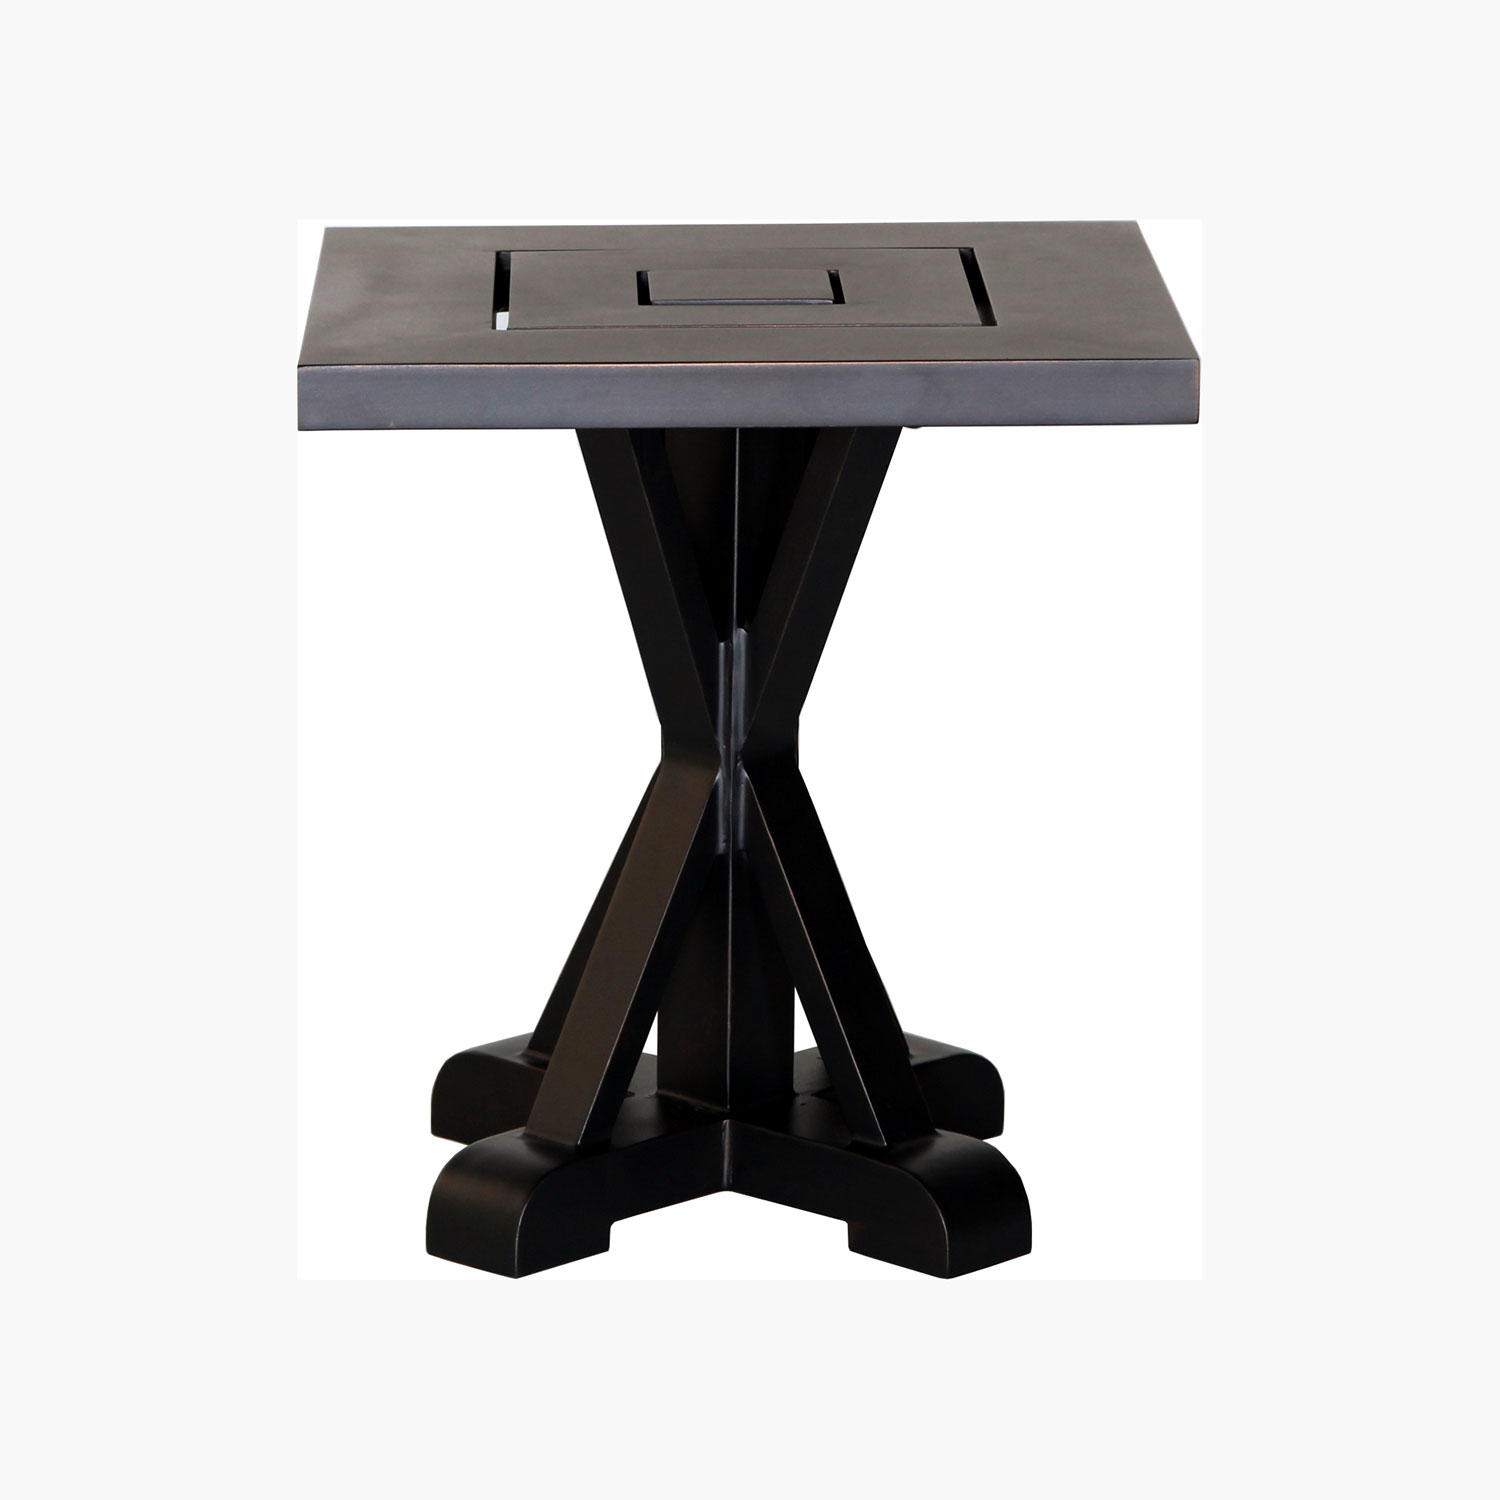 series square accent table jmsqat outdoor furniture end small side with shelves cedarwood tall crystal lamp extendable farmhouse chestnut coffee dining room centerpieces everyday